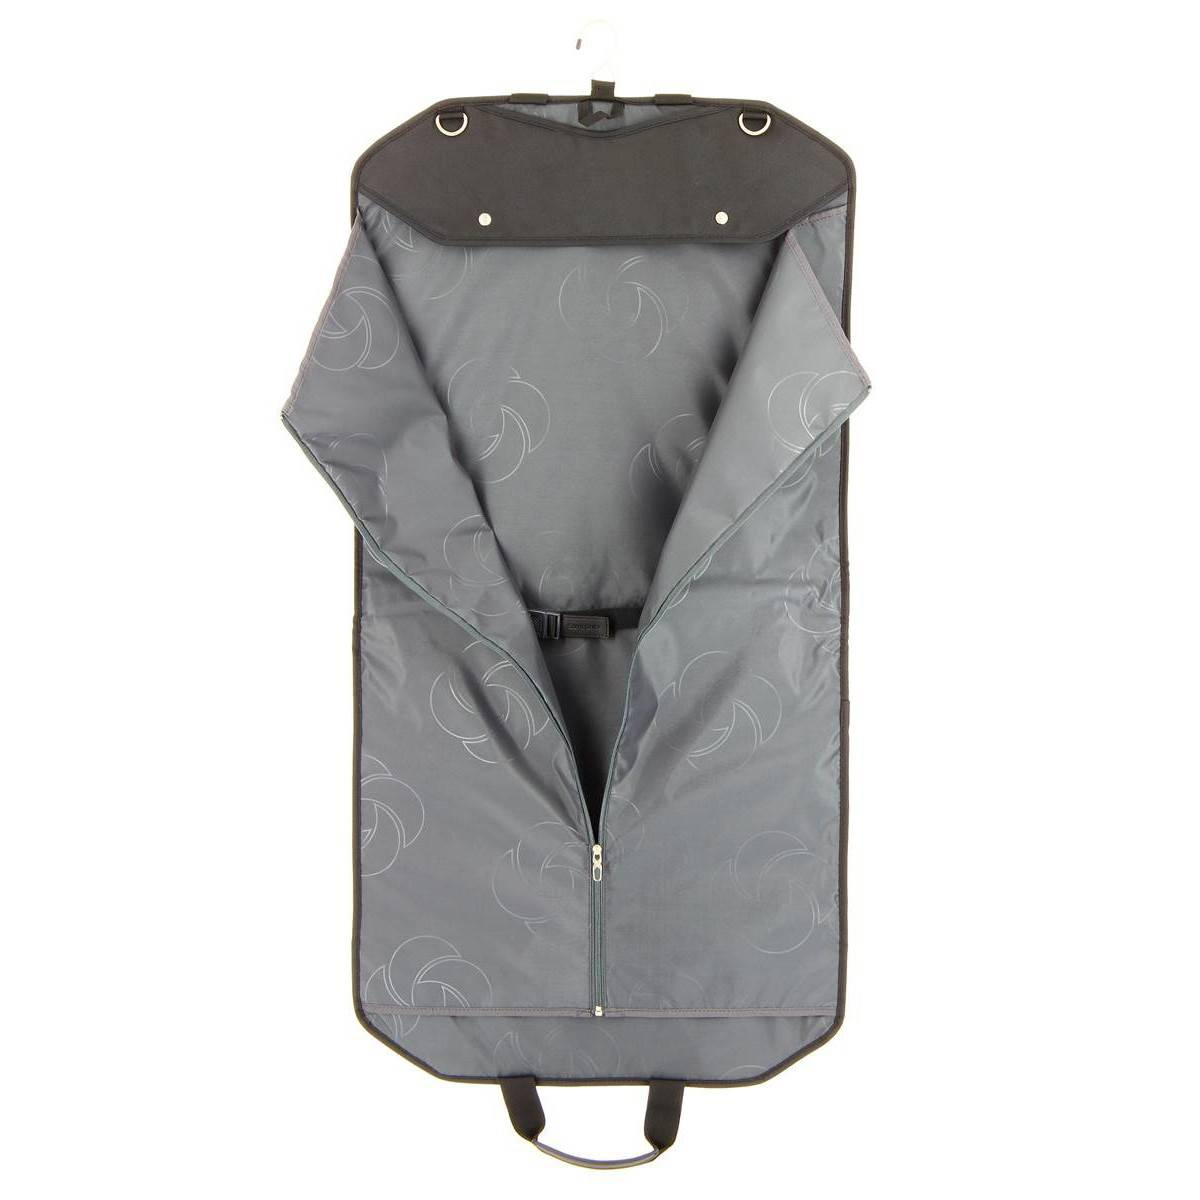 Porte vetement x 39 blade samsonite for Porte vetement